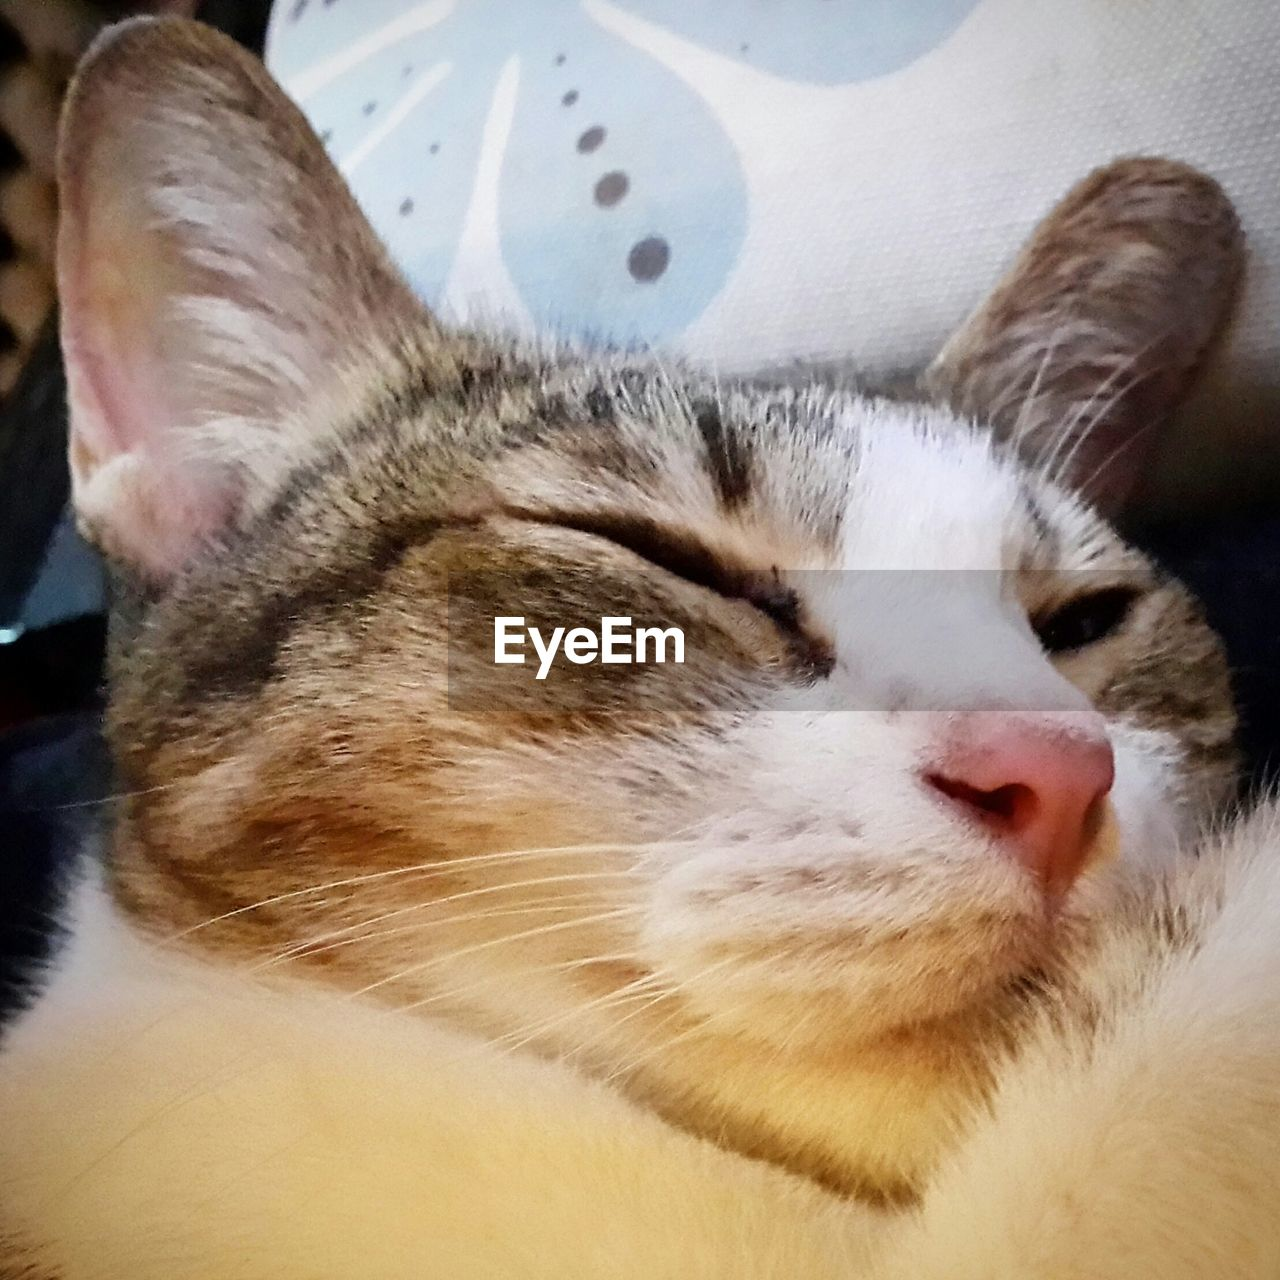 pets, domestic animals, domestic cat, one animal, animal themes, eyes closed, mammal, sleeping, indoors, cat, close-up, feline, whisker, relaxation, no people, day